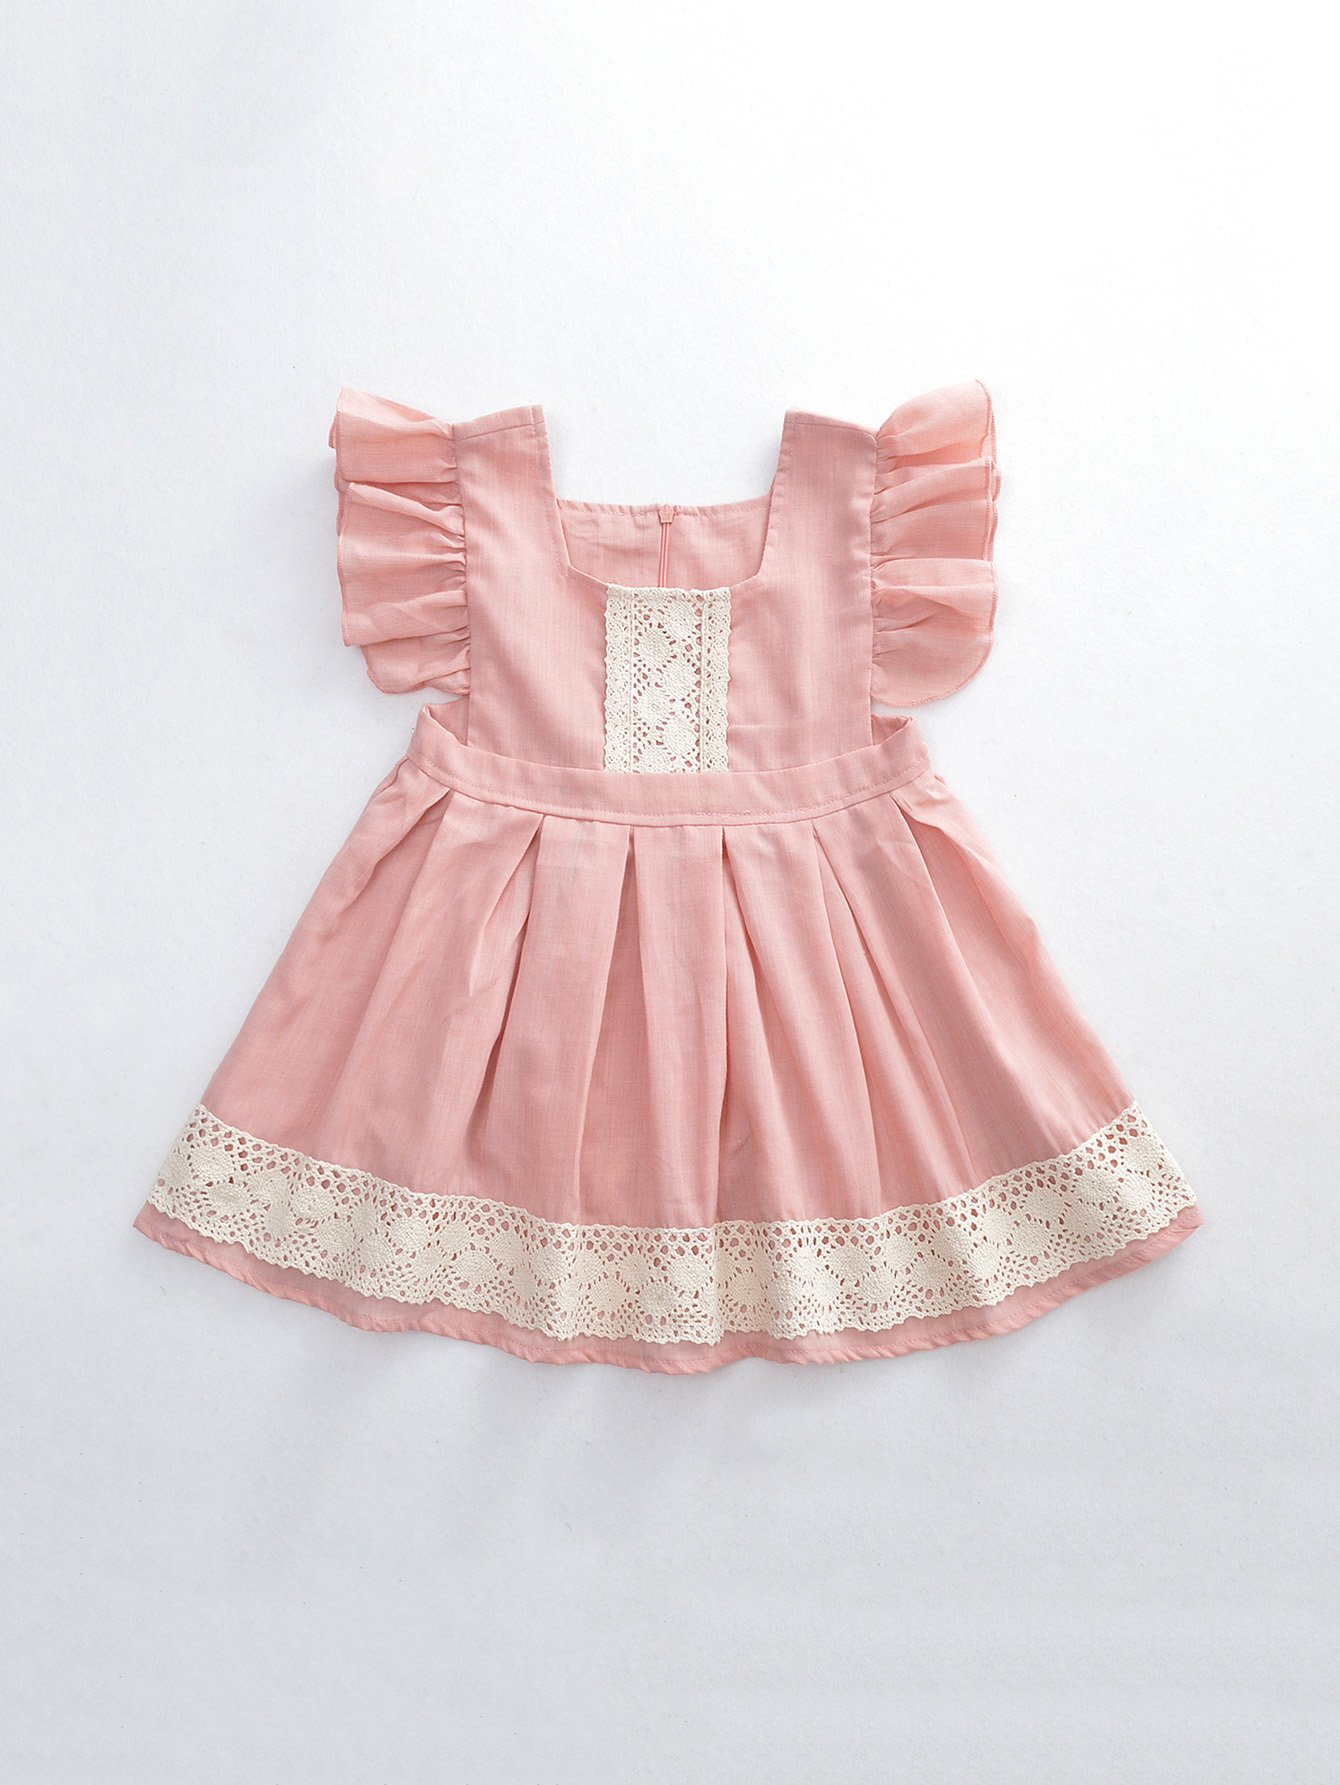 Girls Contrast Lace Ruffle Dress